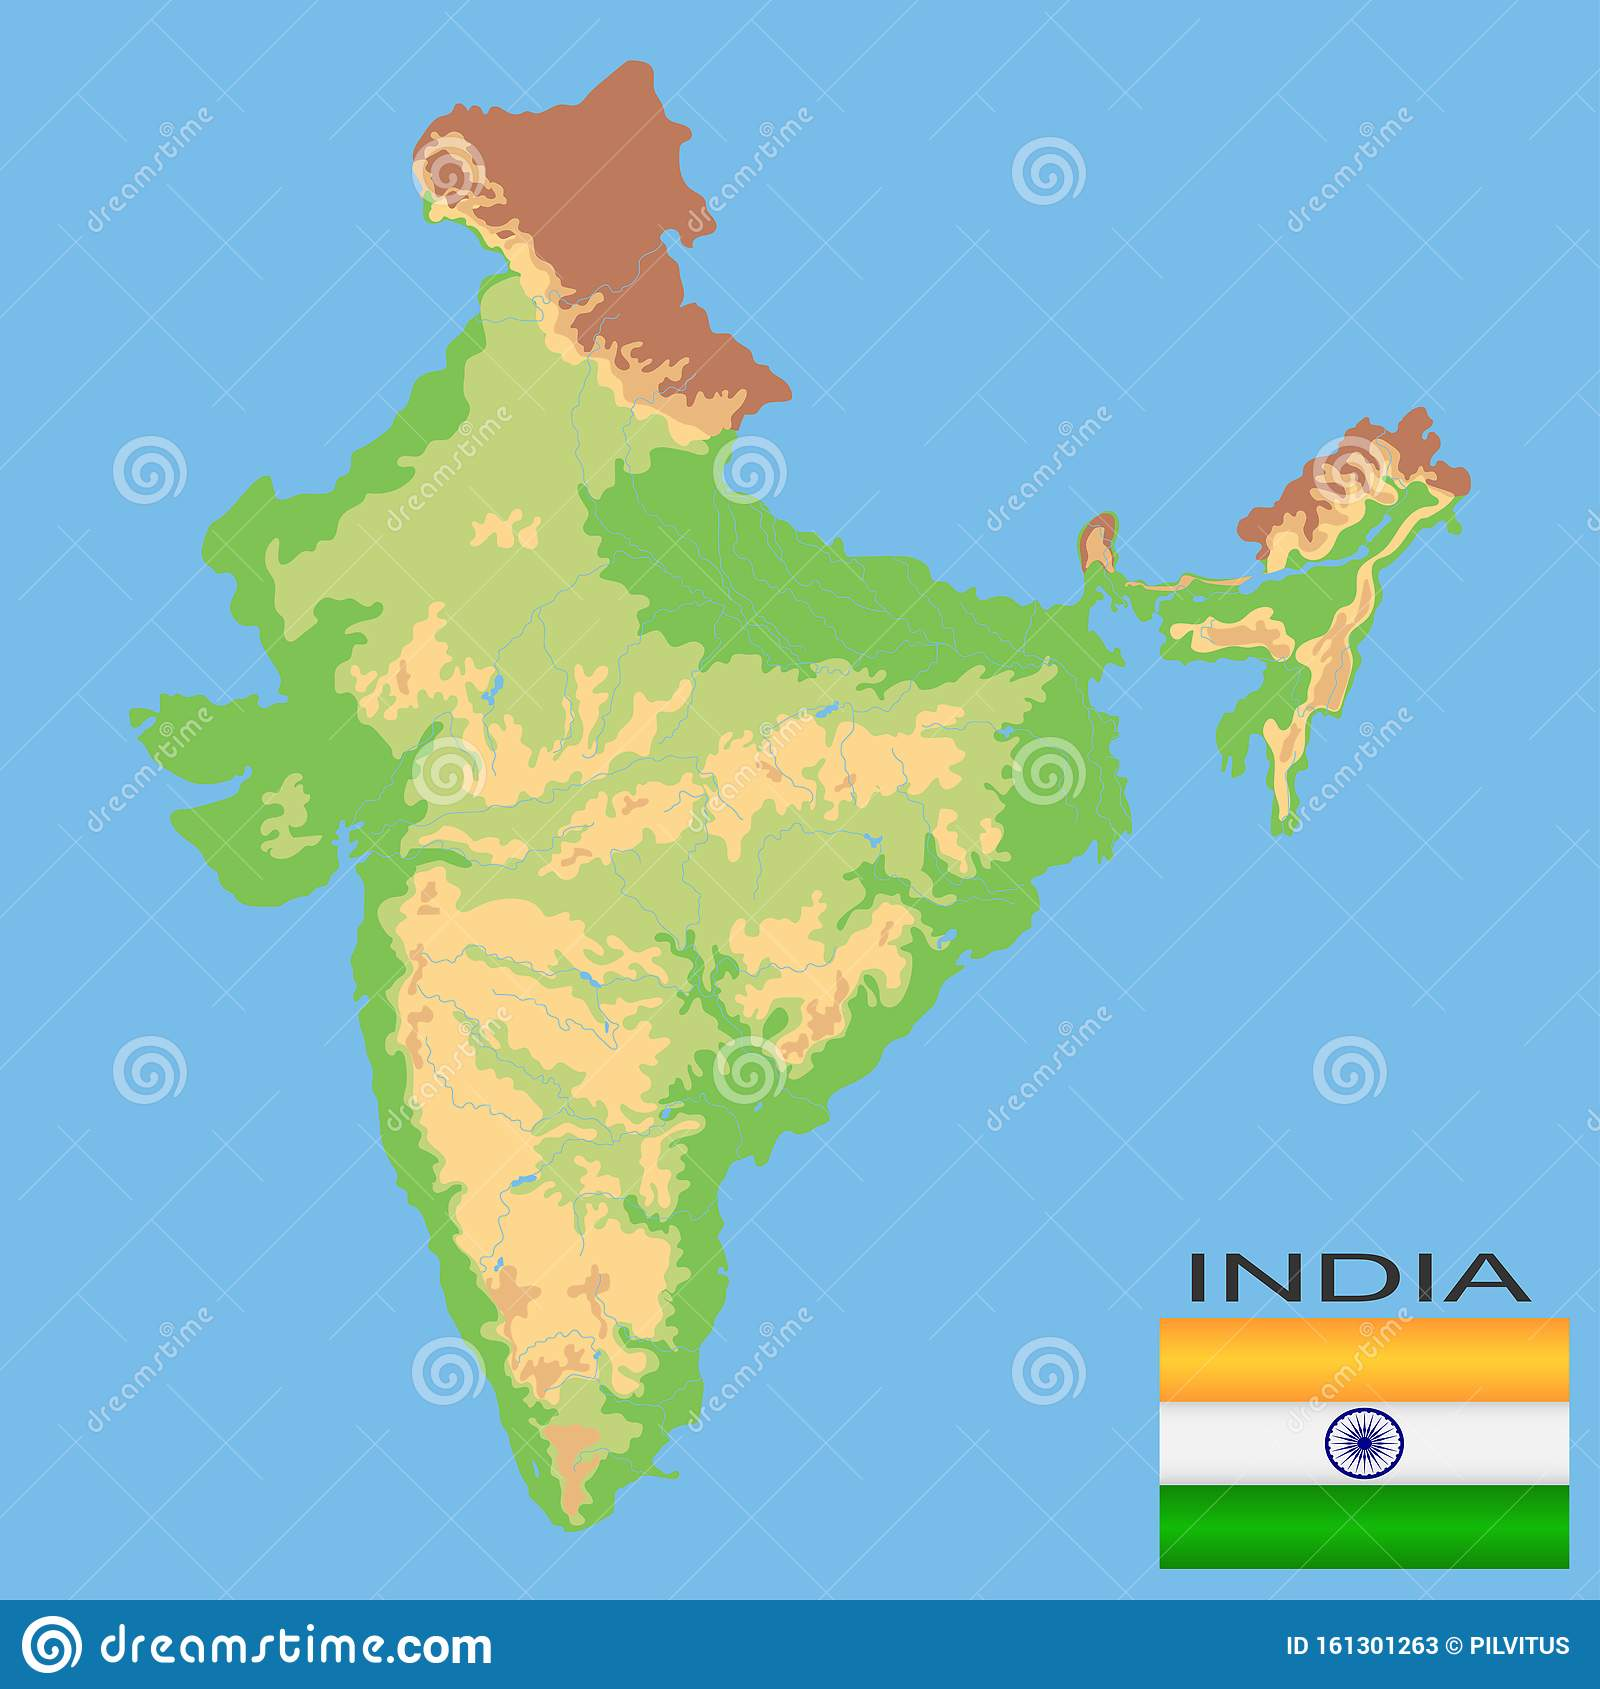 Picture of: India Detailed Physical Map Of India Colored According To Elevation With Rivers Lakes Mountains Vector Map With Stock Vector Illustration Of Environment National 161301263